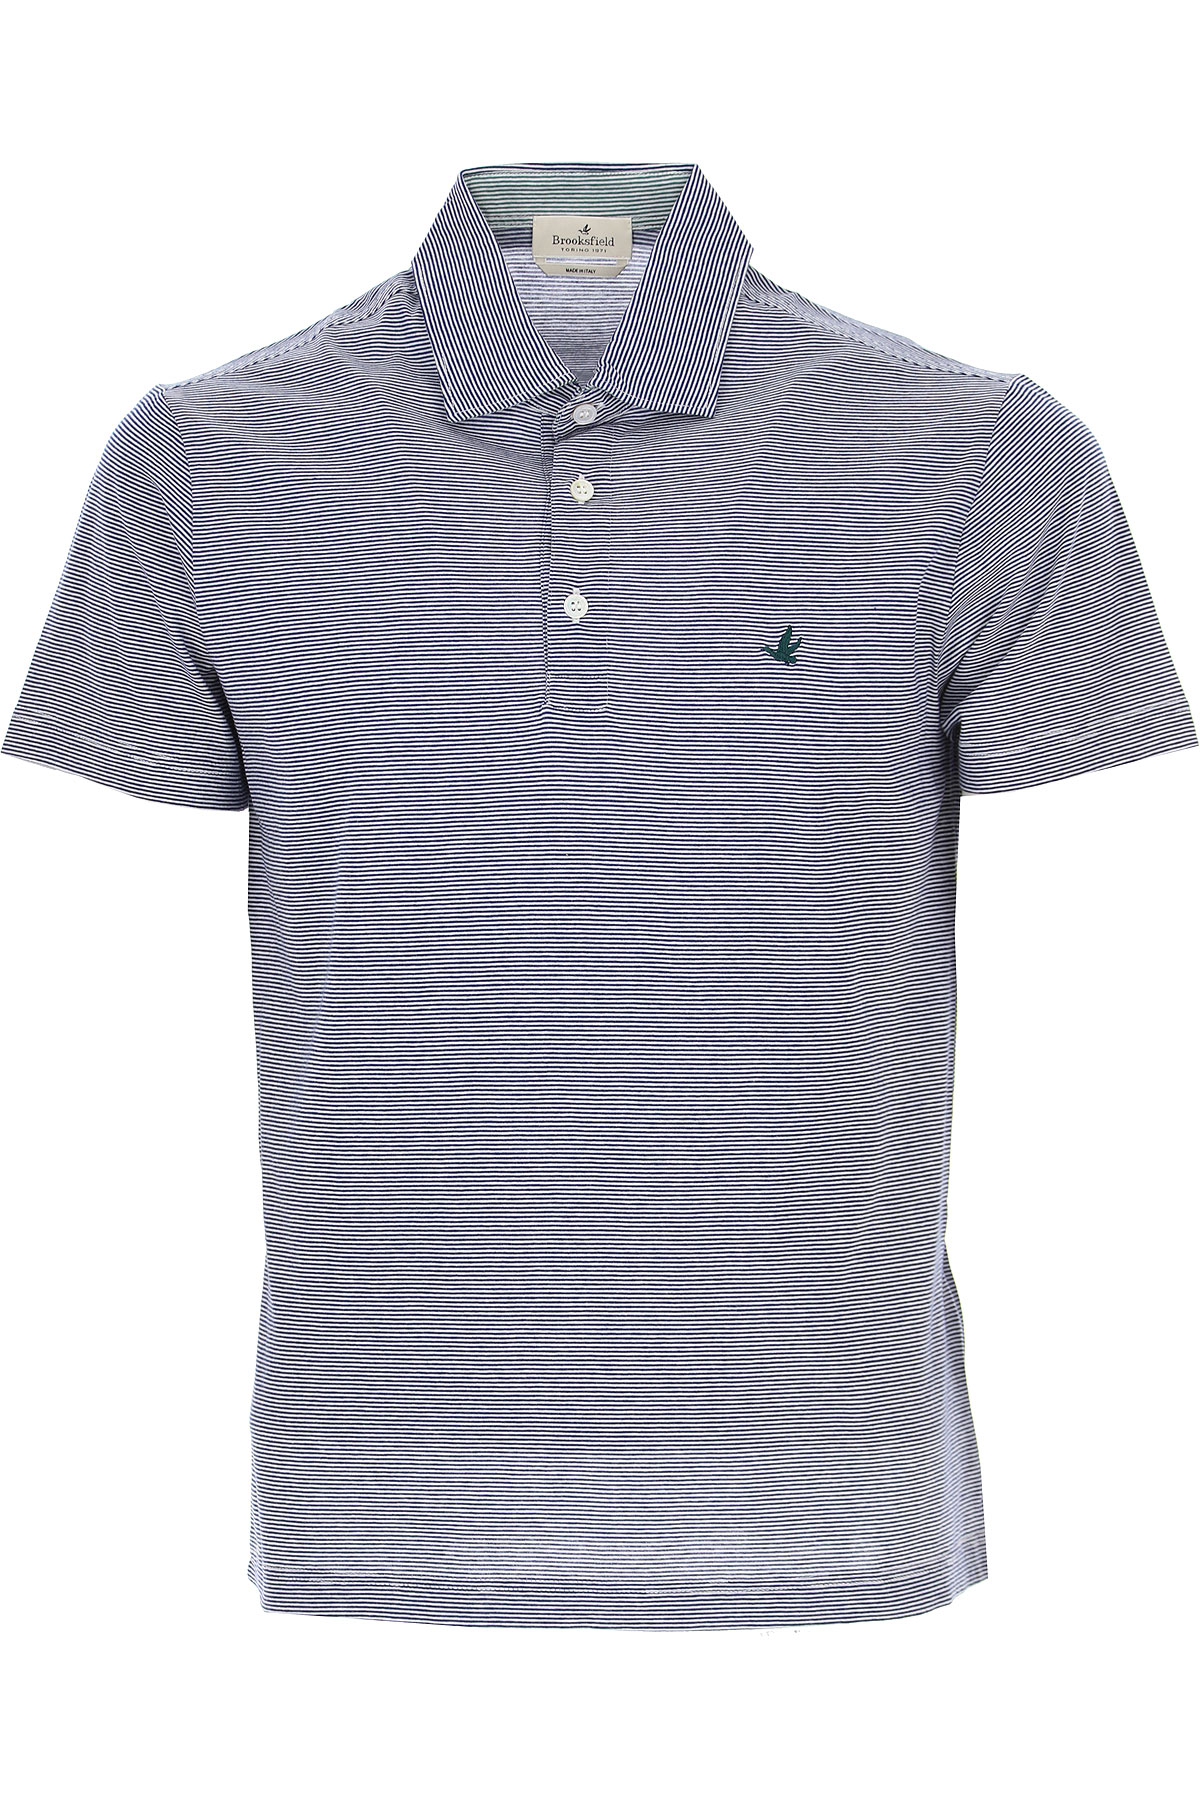 Brooksfield Polo Shirt for Men On Sale, Blu Navy, Cotton, 2019, L M XL XXL XXXL